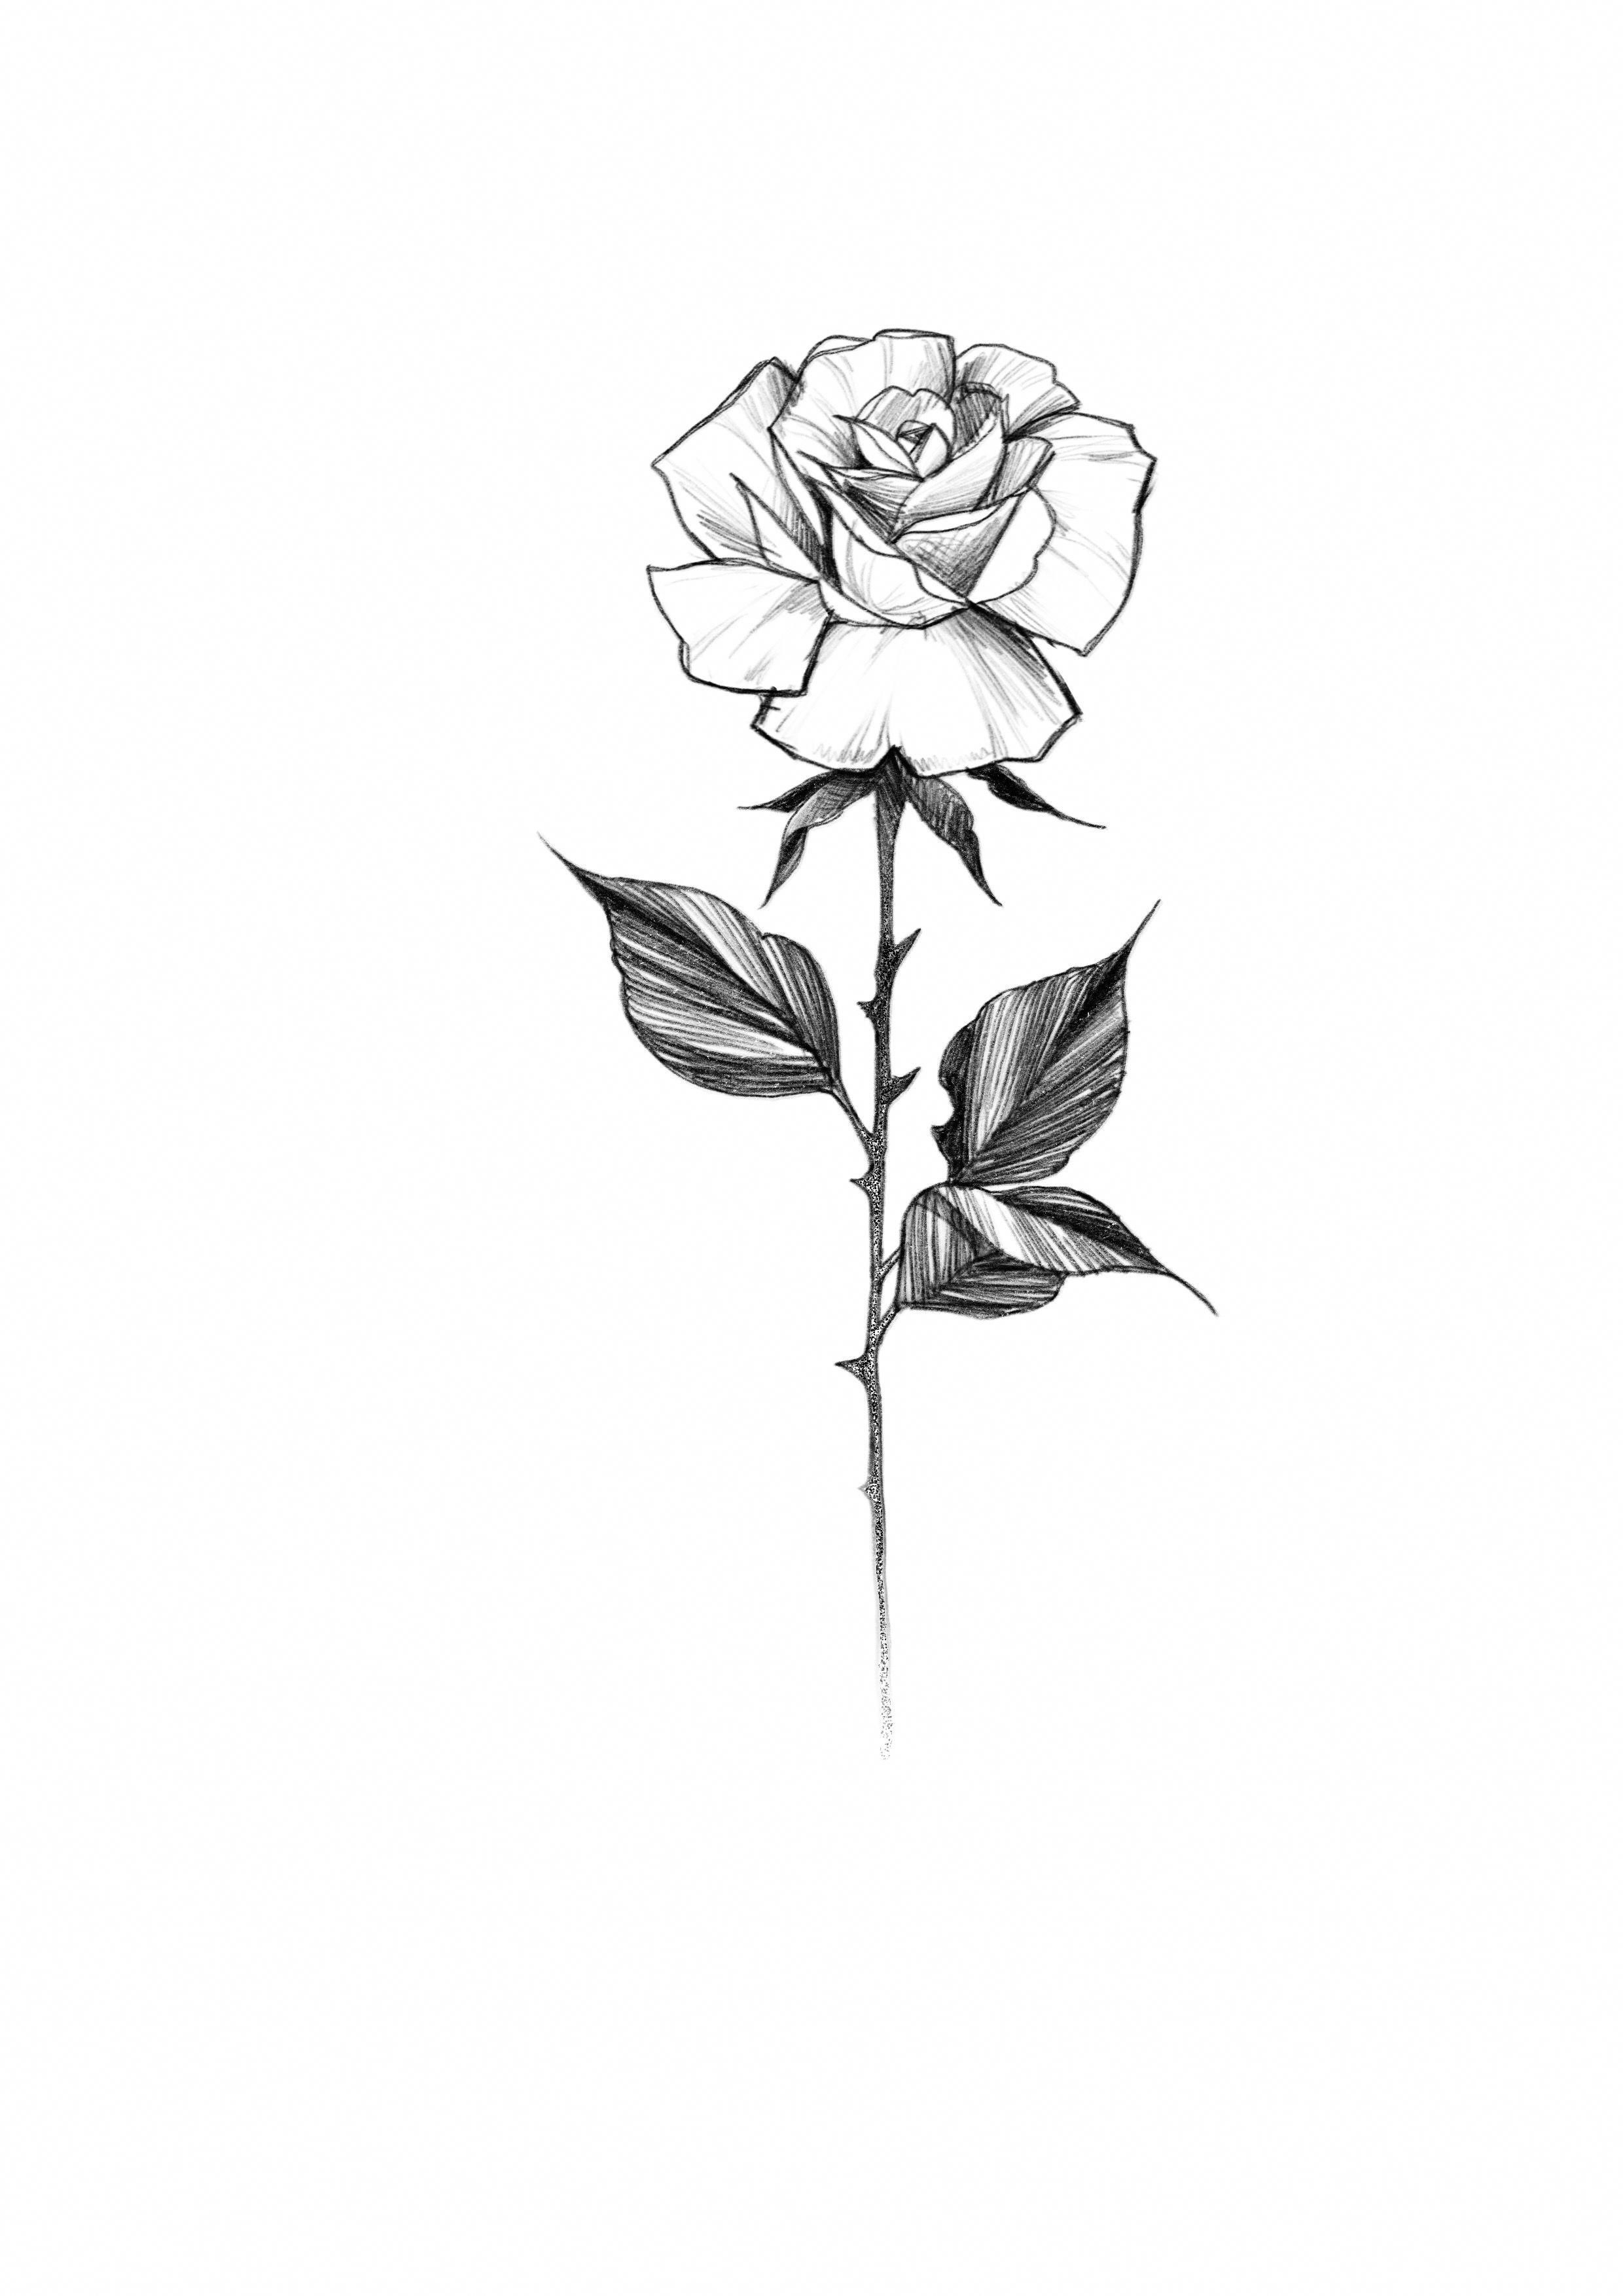 Pin By Harry Angel On Flowers Roses Drawing Rose Tattoo Stencil Tattoo Outline Drawing